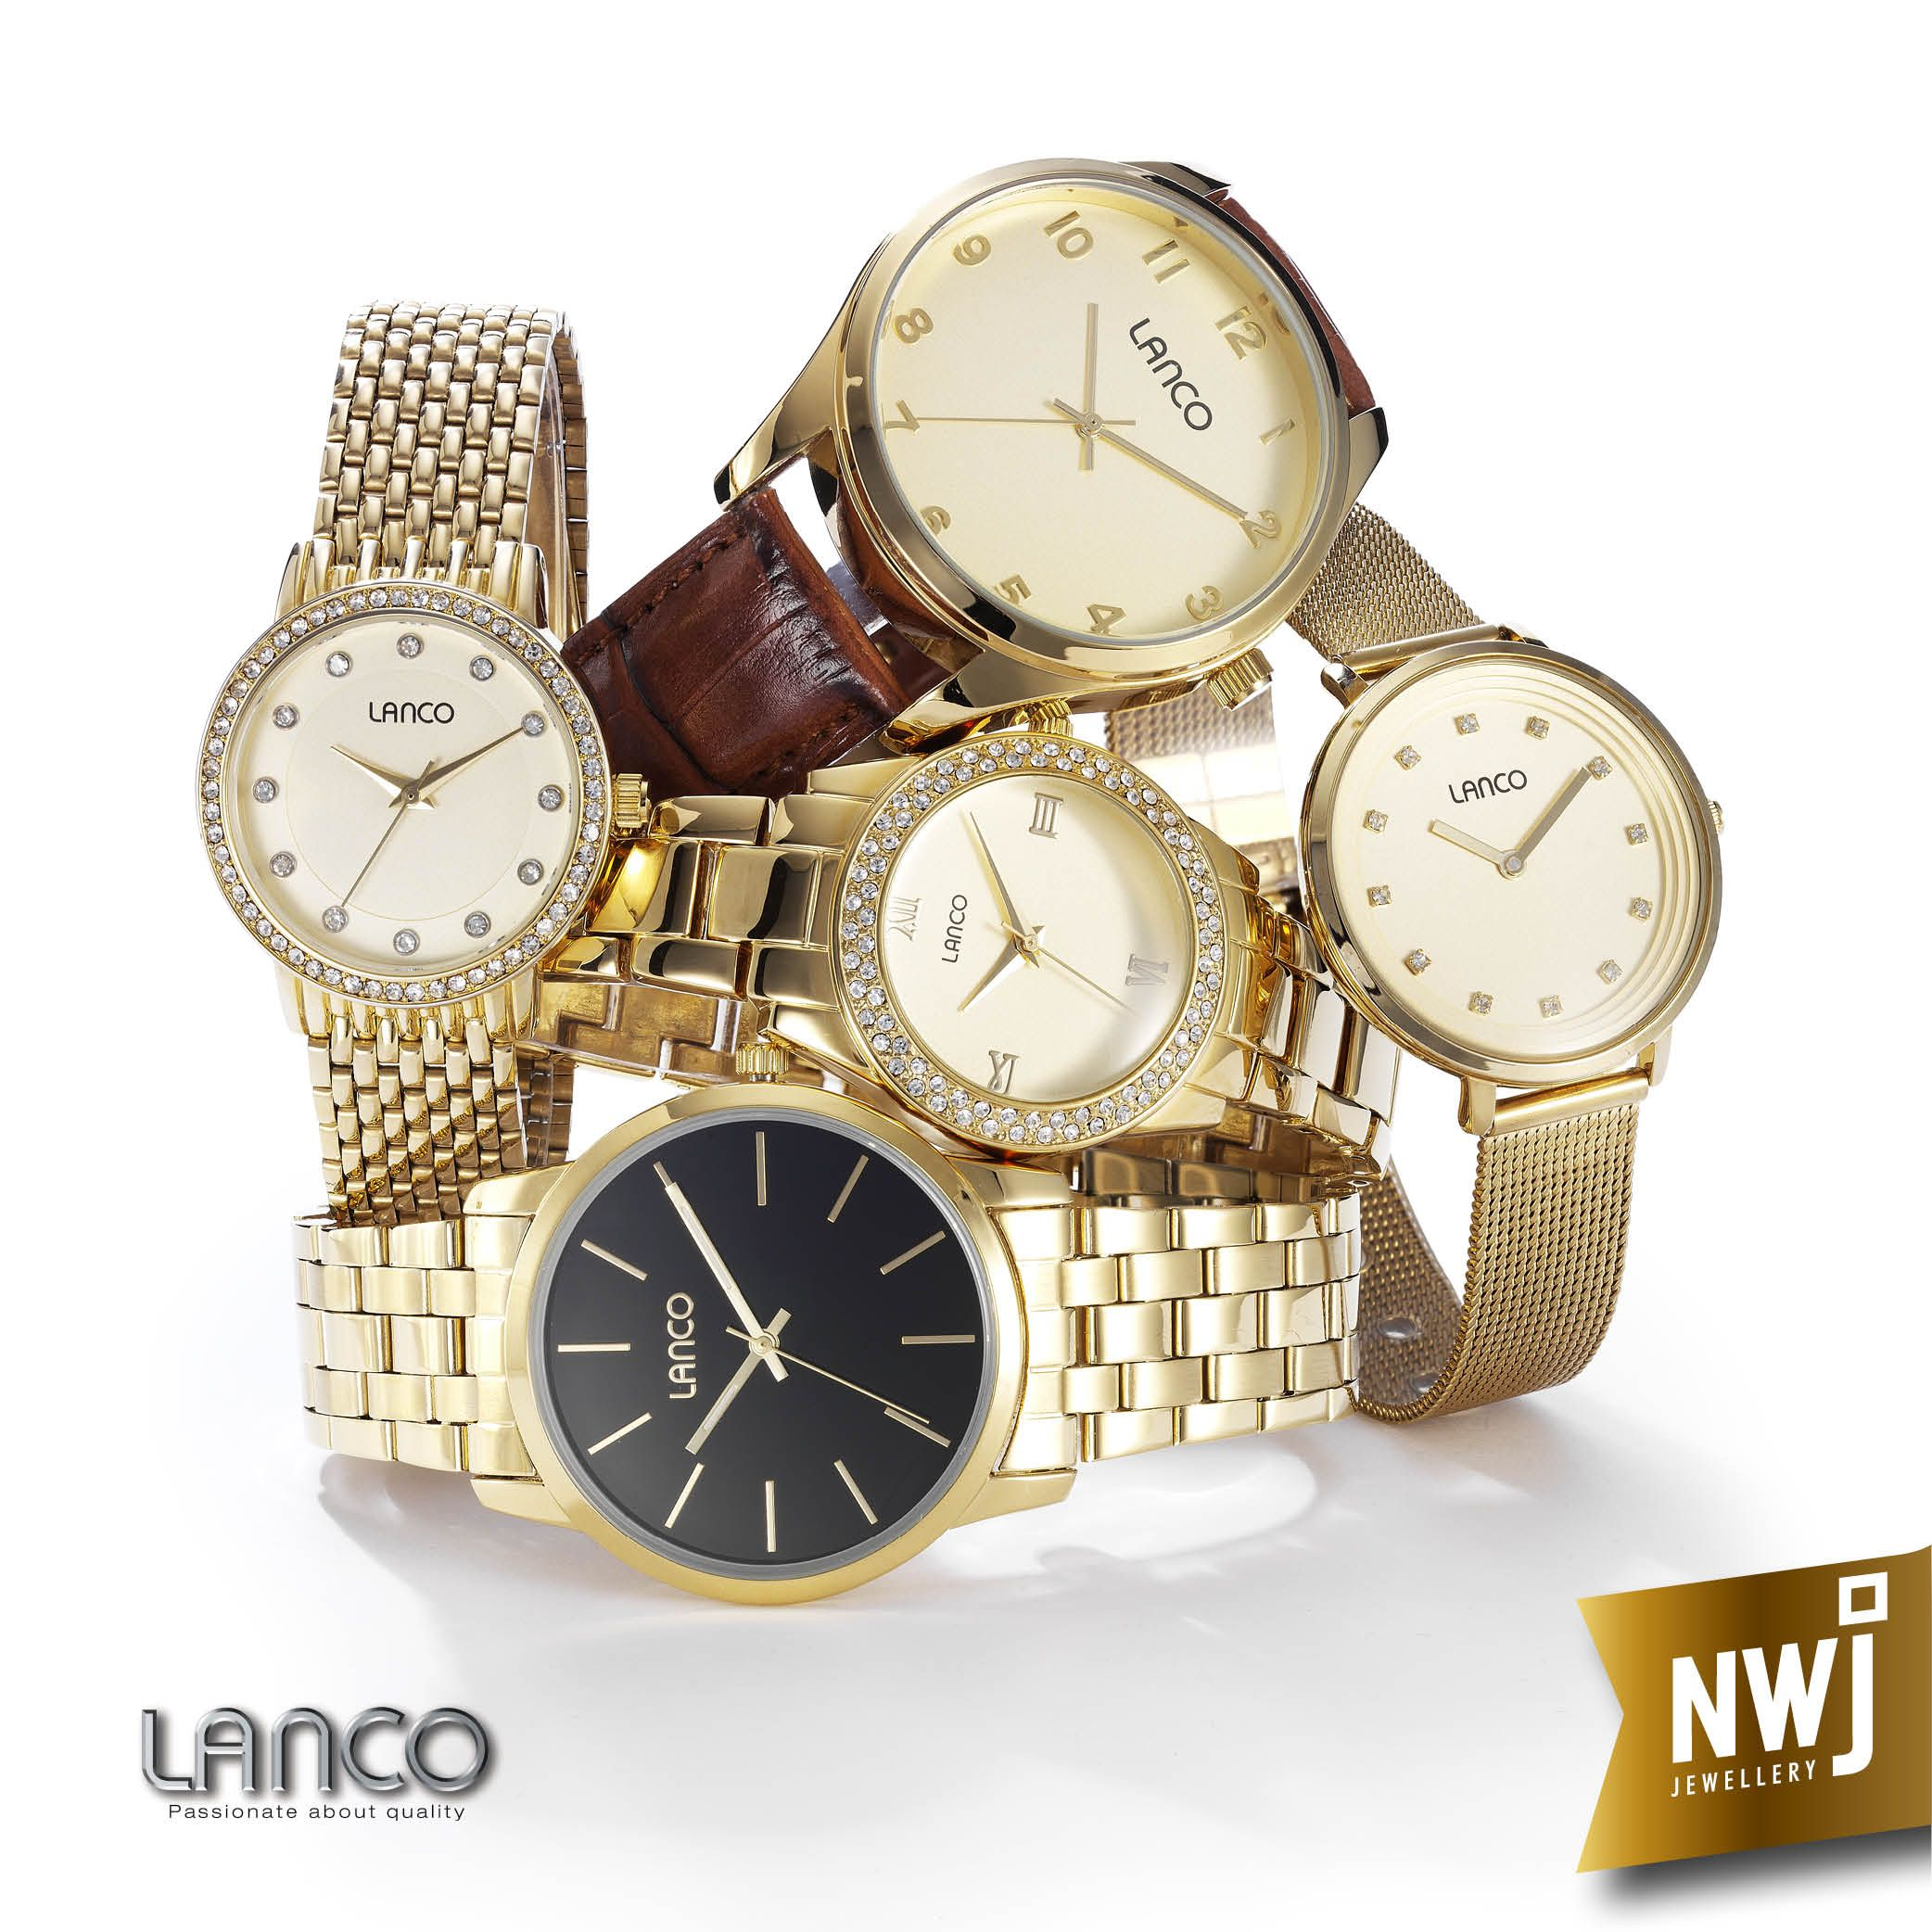 NWJ s Hallmark watches are beautifully crafted and have timeless